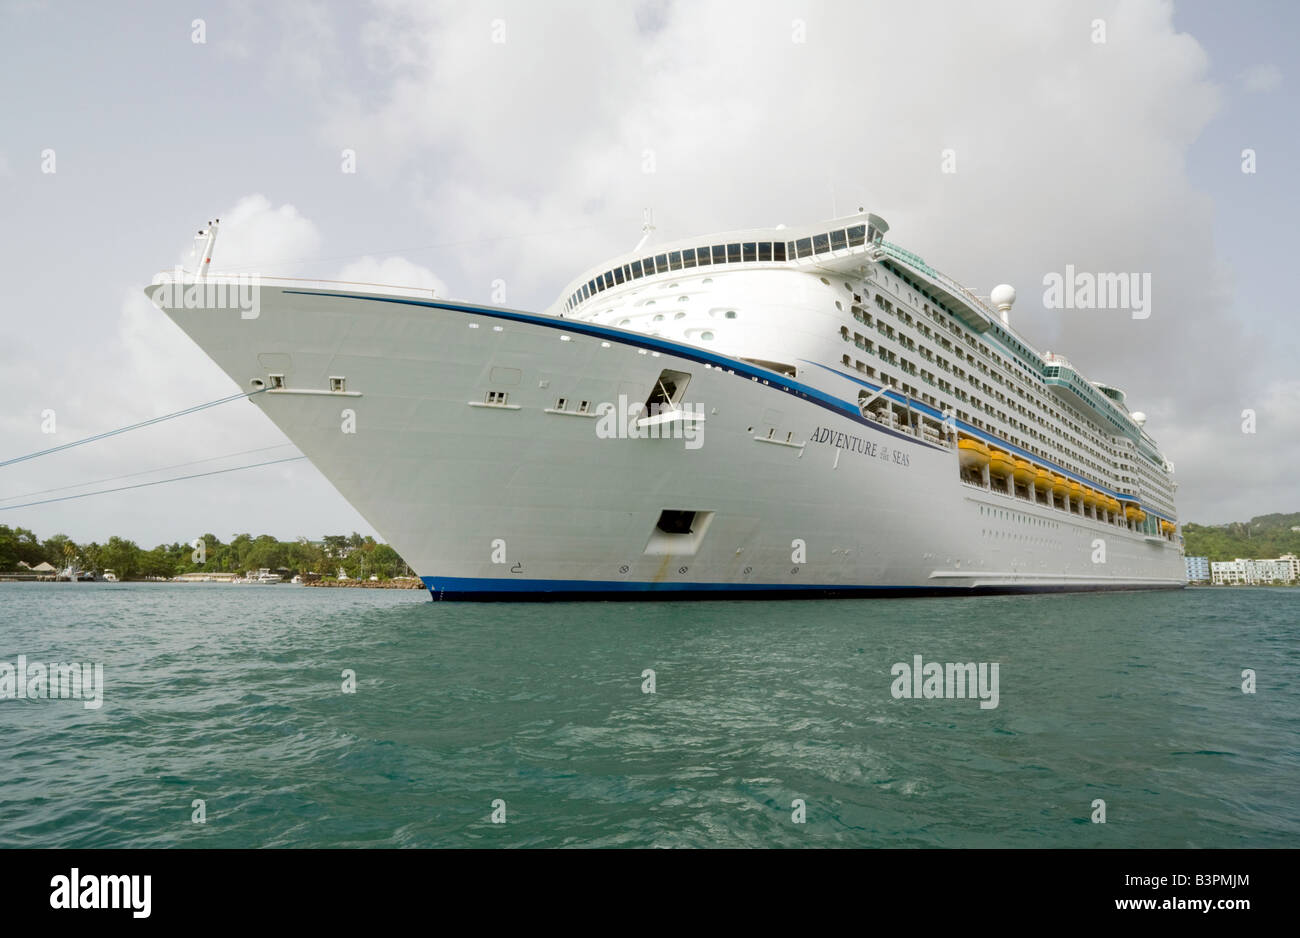 The Royal Caribbean cruise ship 'Adventure of the seas' in port , Castries St Lucia, 'West Indies' - Stock Image